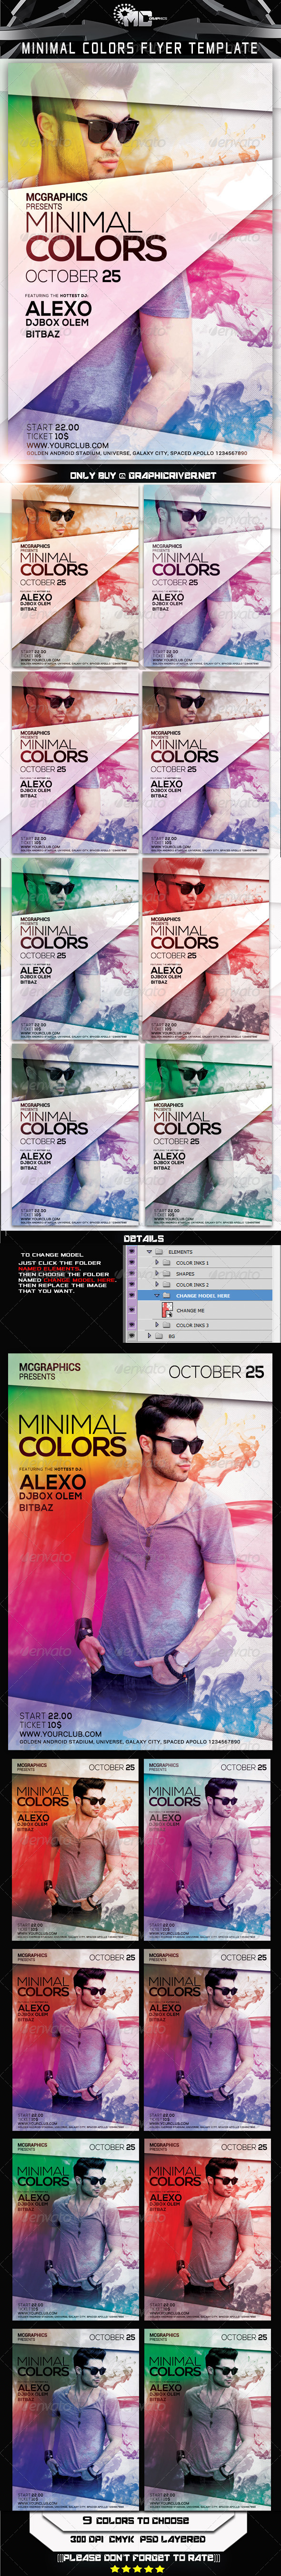 GraphicRiver Minimal Colors Flyer Template 7956686